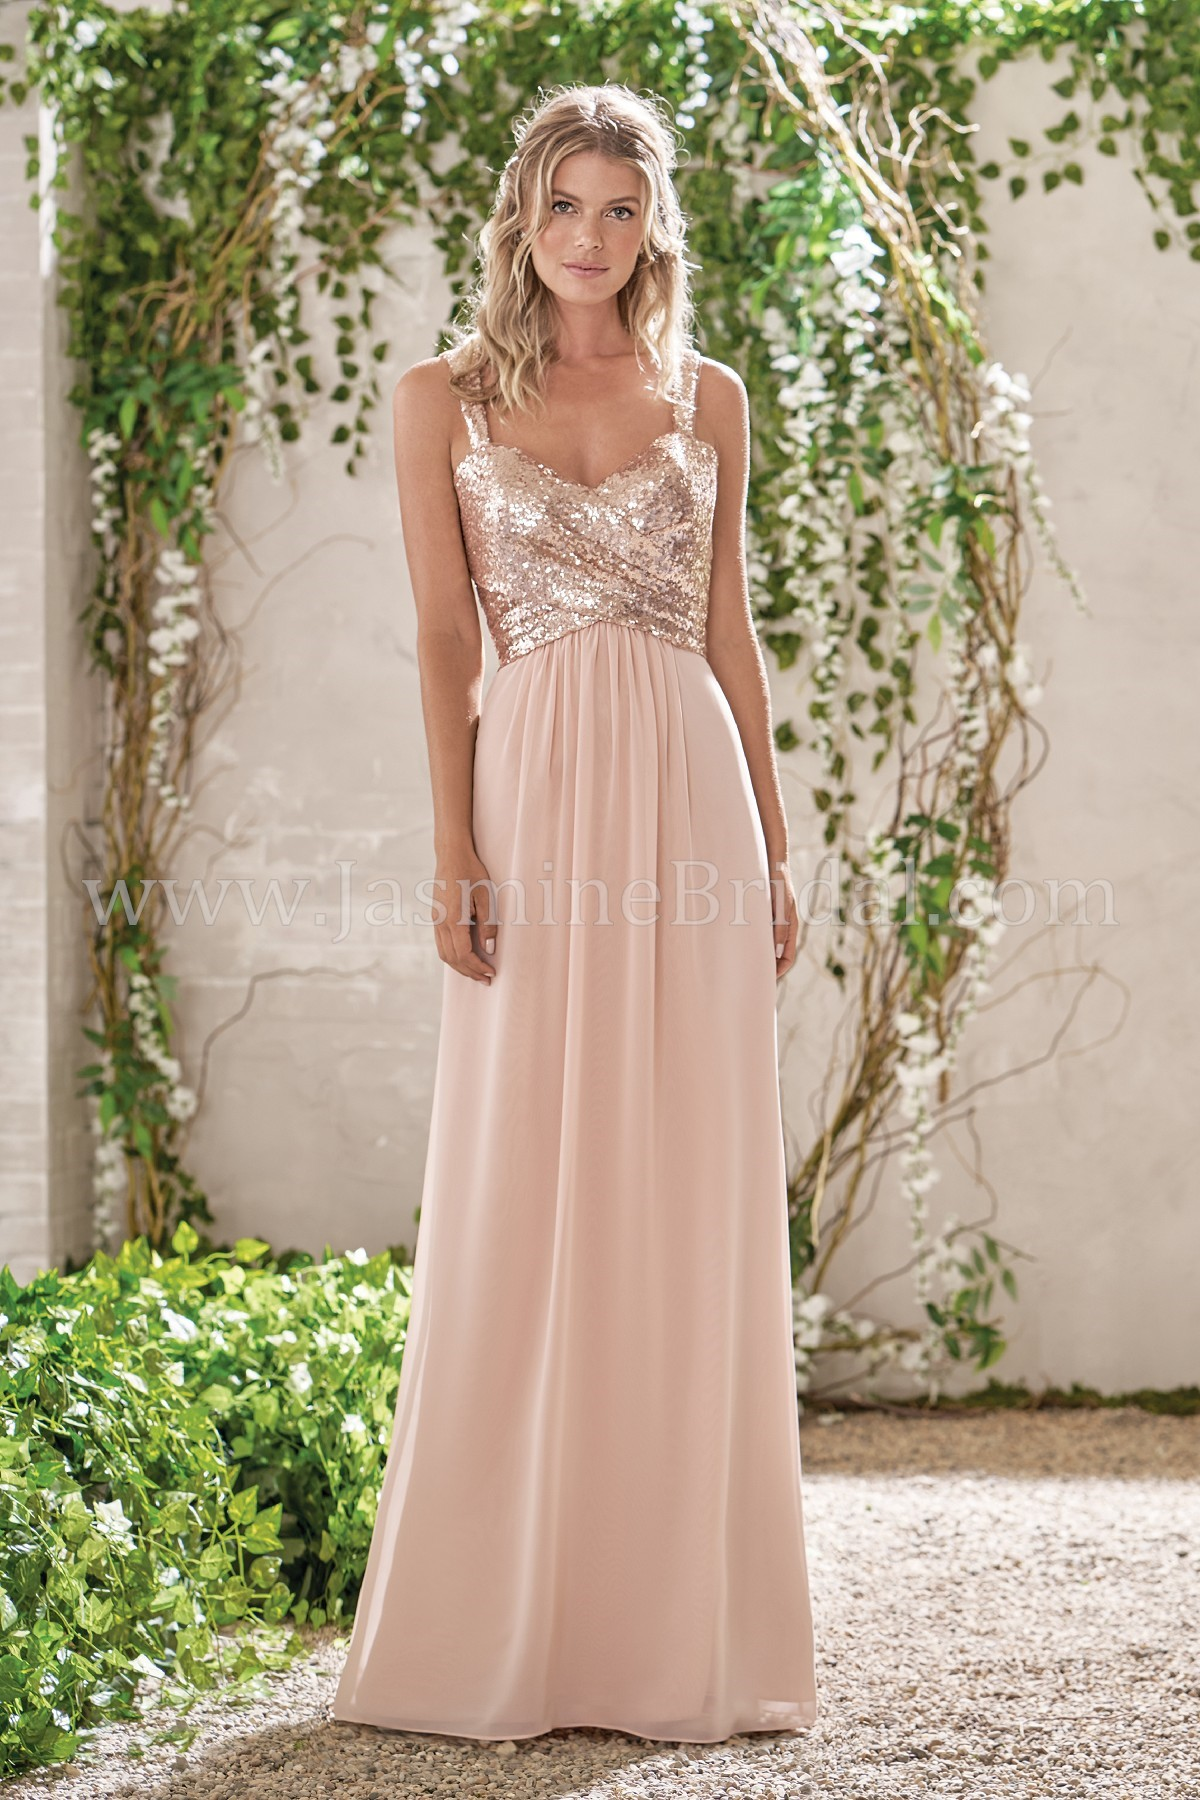 B193005 Long Sweetheart Neckline Sequin   Poly Chiffon Bridesmaid Dress